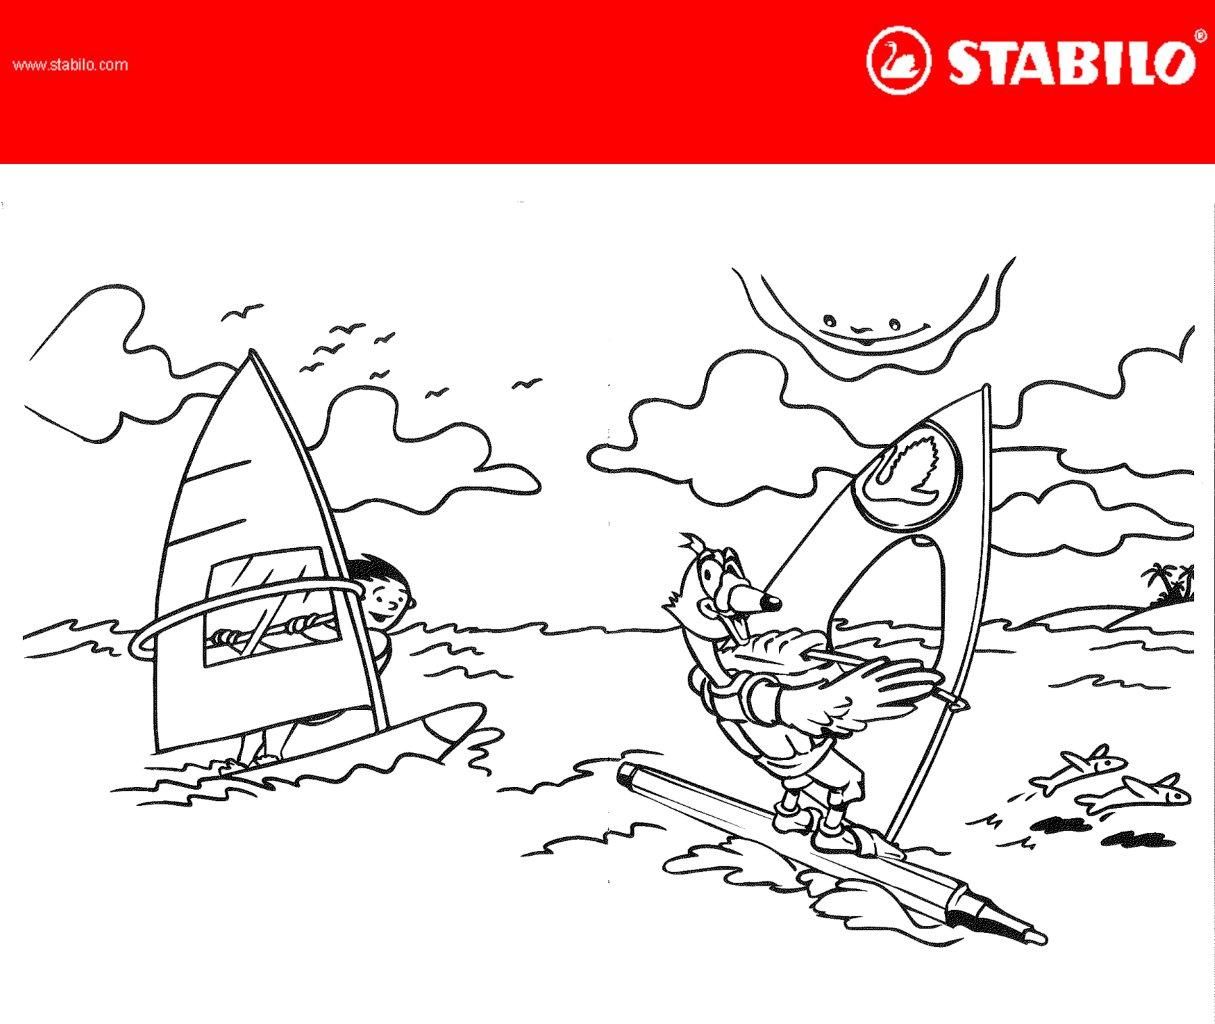 Stabilo Colouring Template